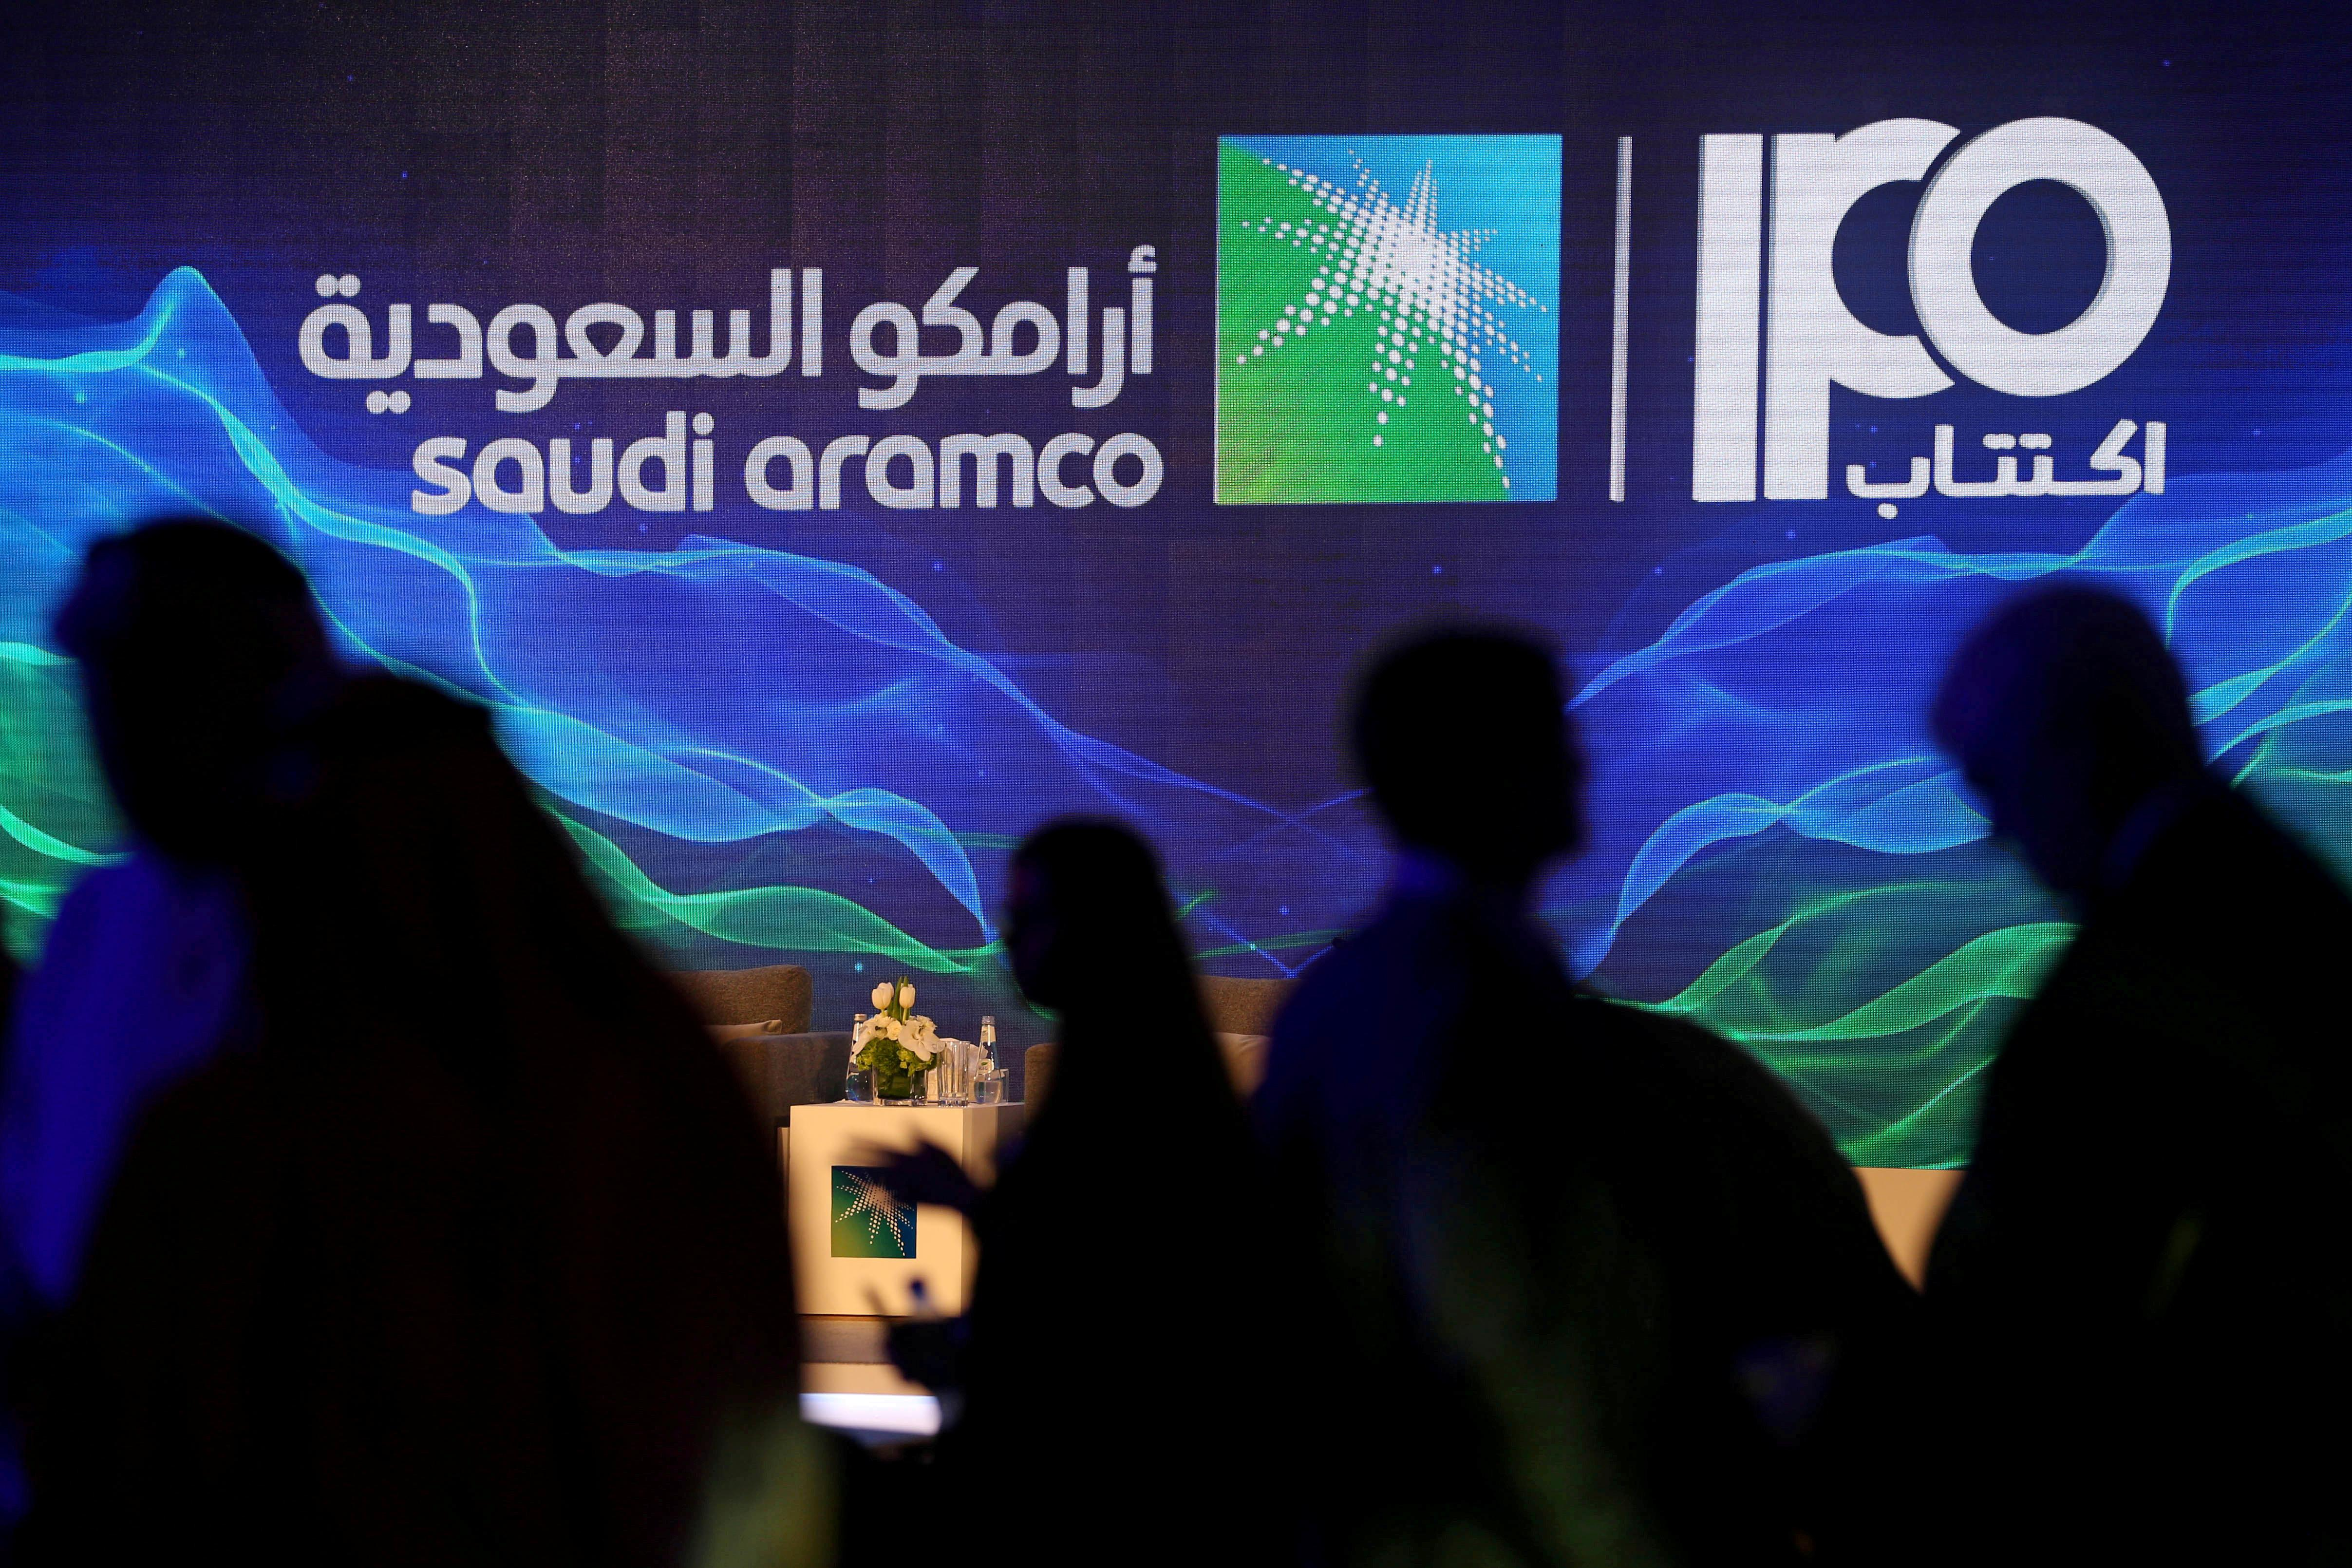 Saudi Aramco will exercise 15% greenshoe option in whole or part...